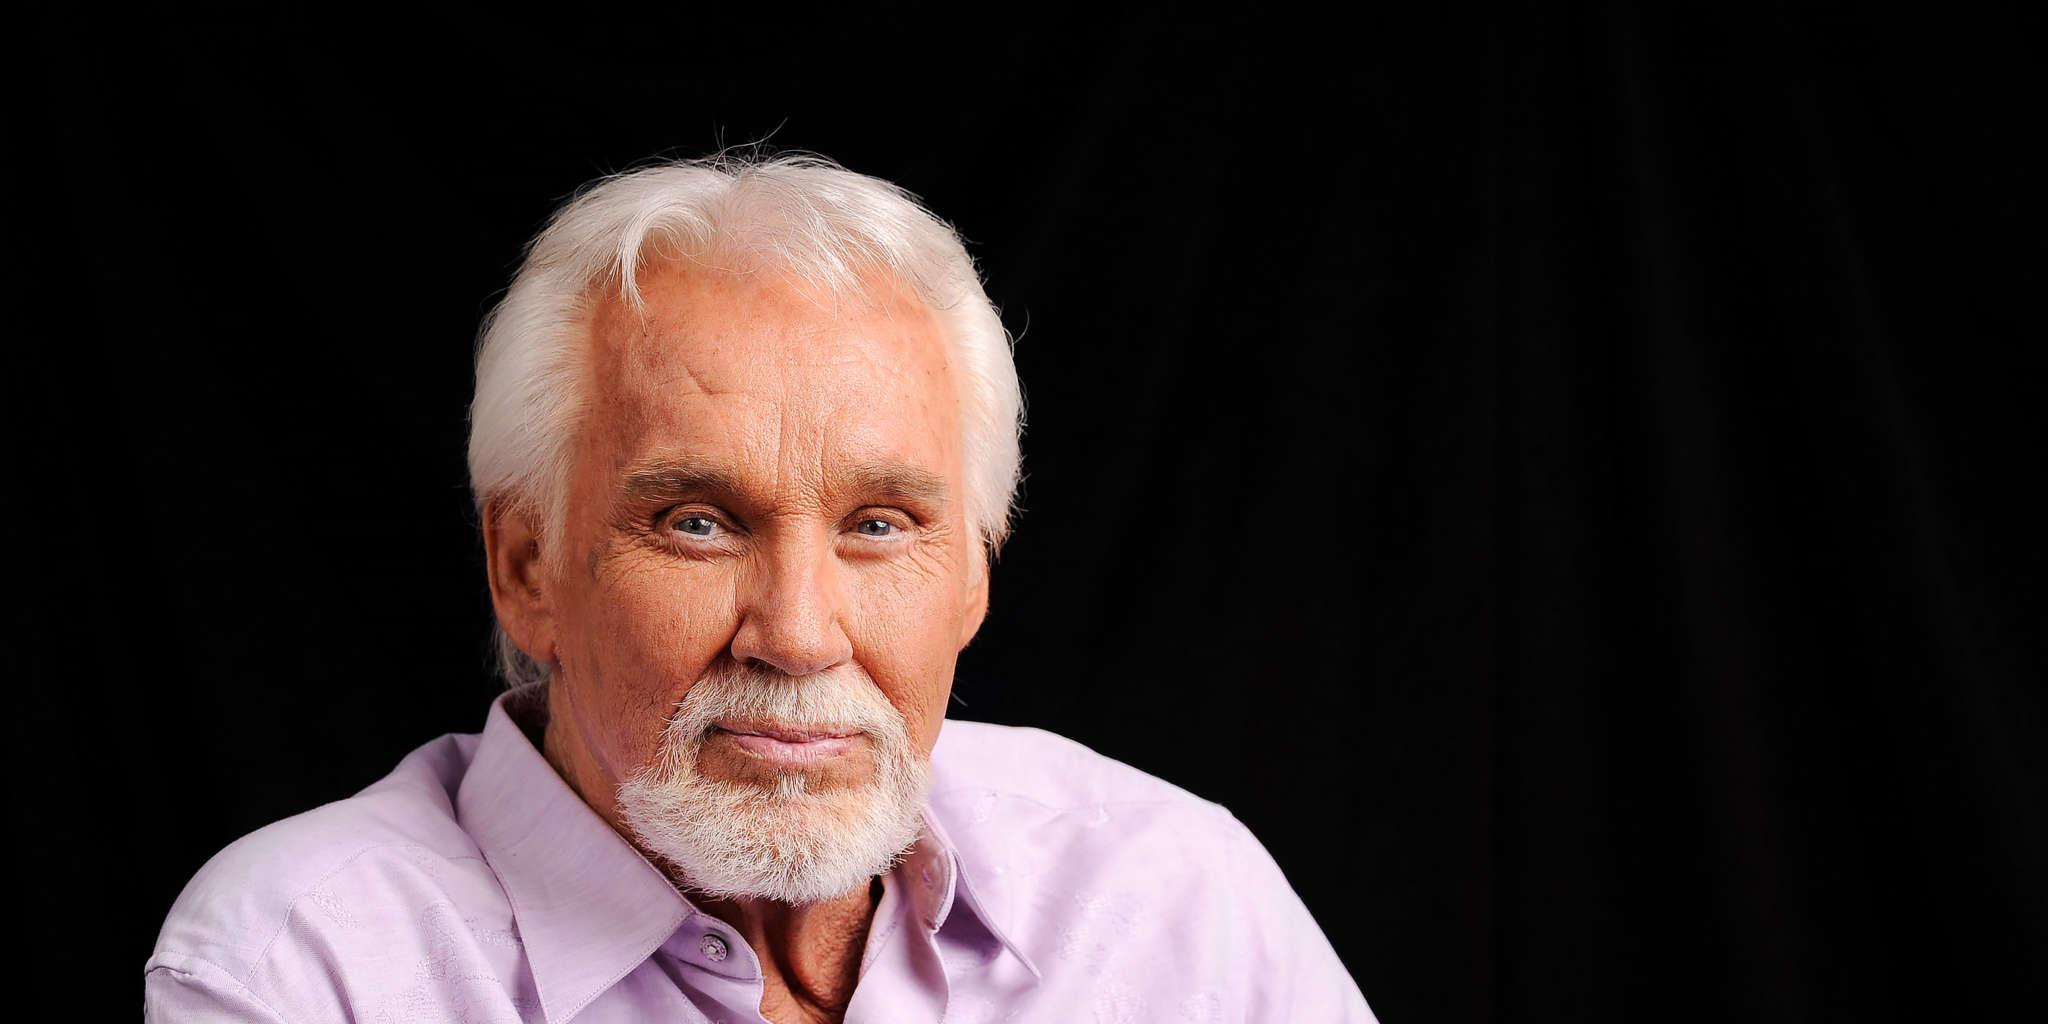 Kenny Rogers - Blake Shelton, Jake Owen, LeAnn Rimes And More Pay Tribute After His Passing